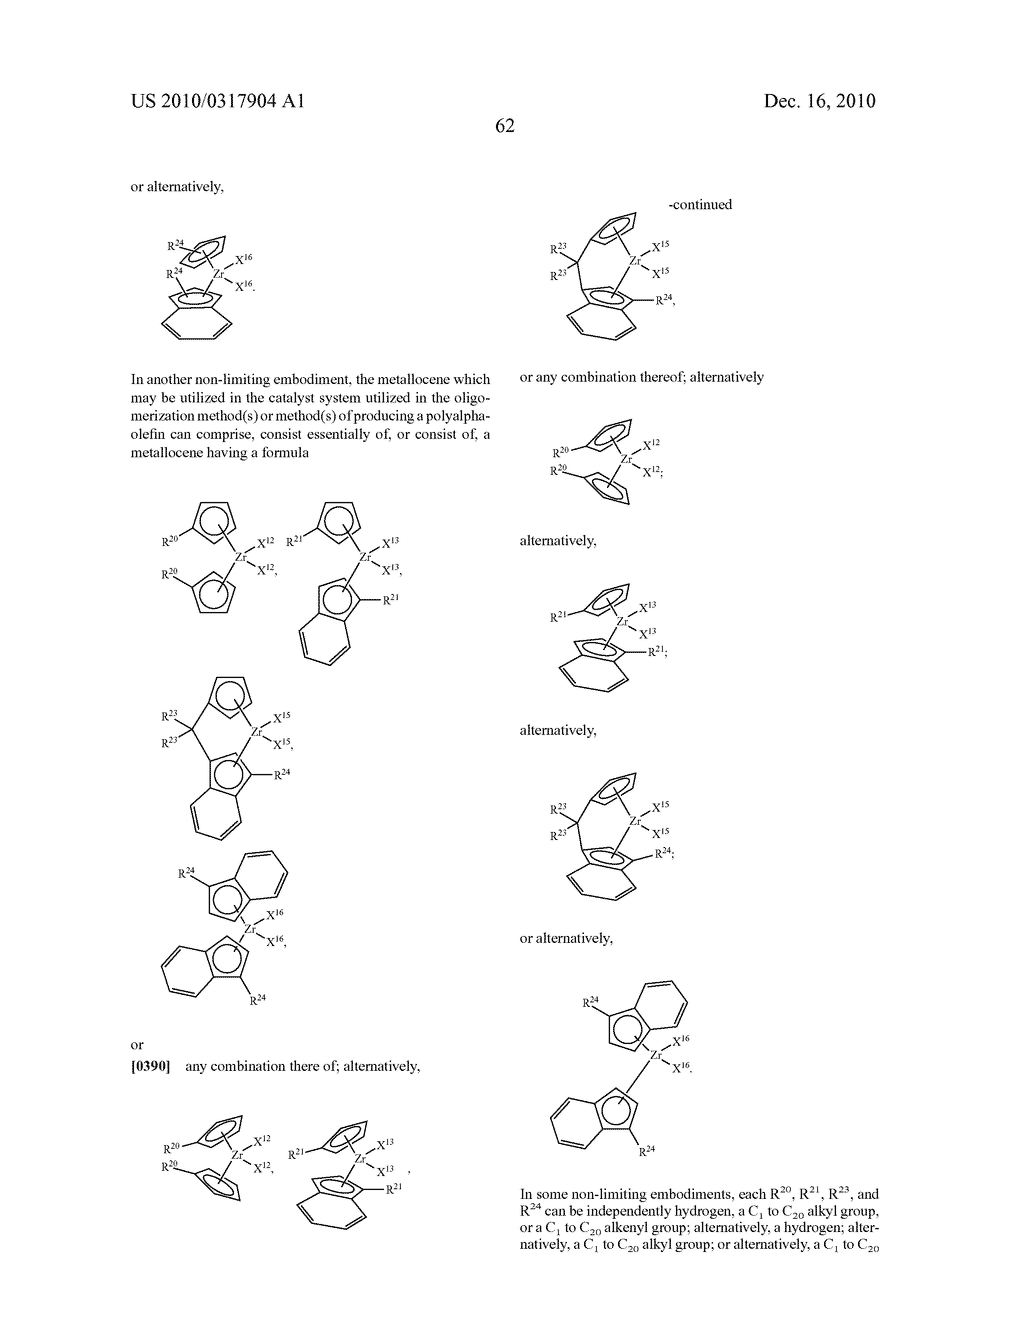 OLIGOMERIZATION OF ALPHA OLEFINS USING METALLOCENE-SSA CATALYST SYSTEMS AND USE OF THE RESULTANT POLYALPHAOLEFINS TO PREPARE LUBRICANT BLENDS - diagram, schematic, and image 74